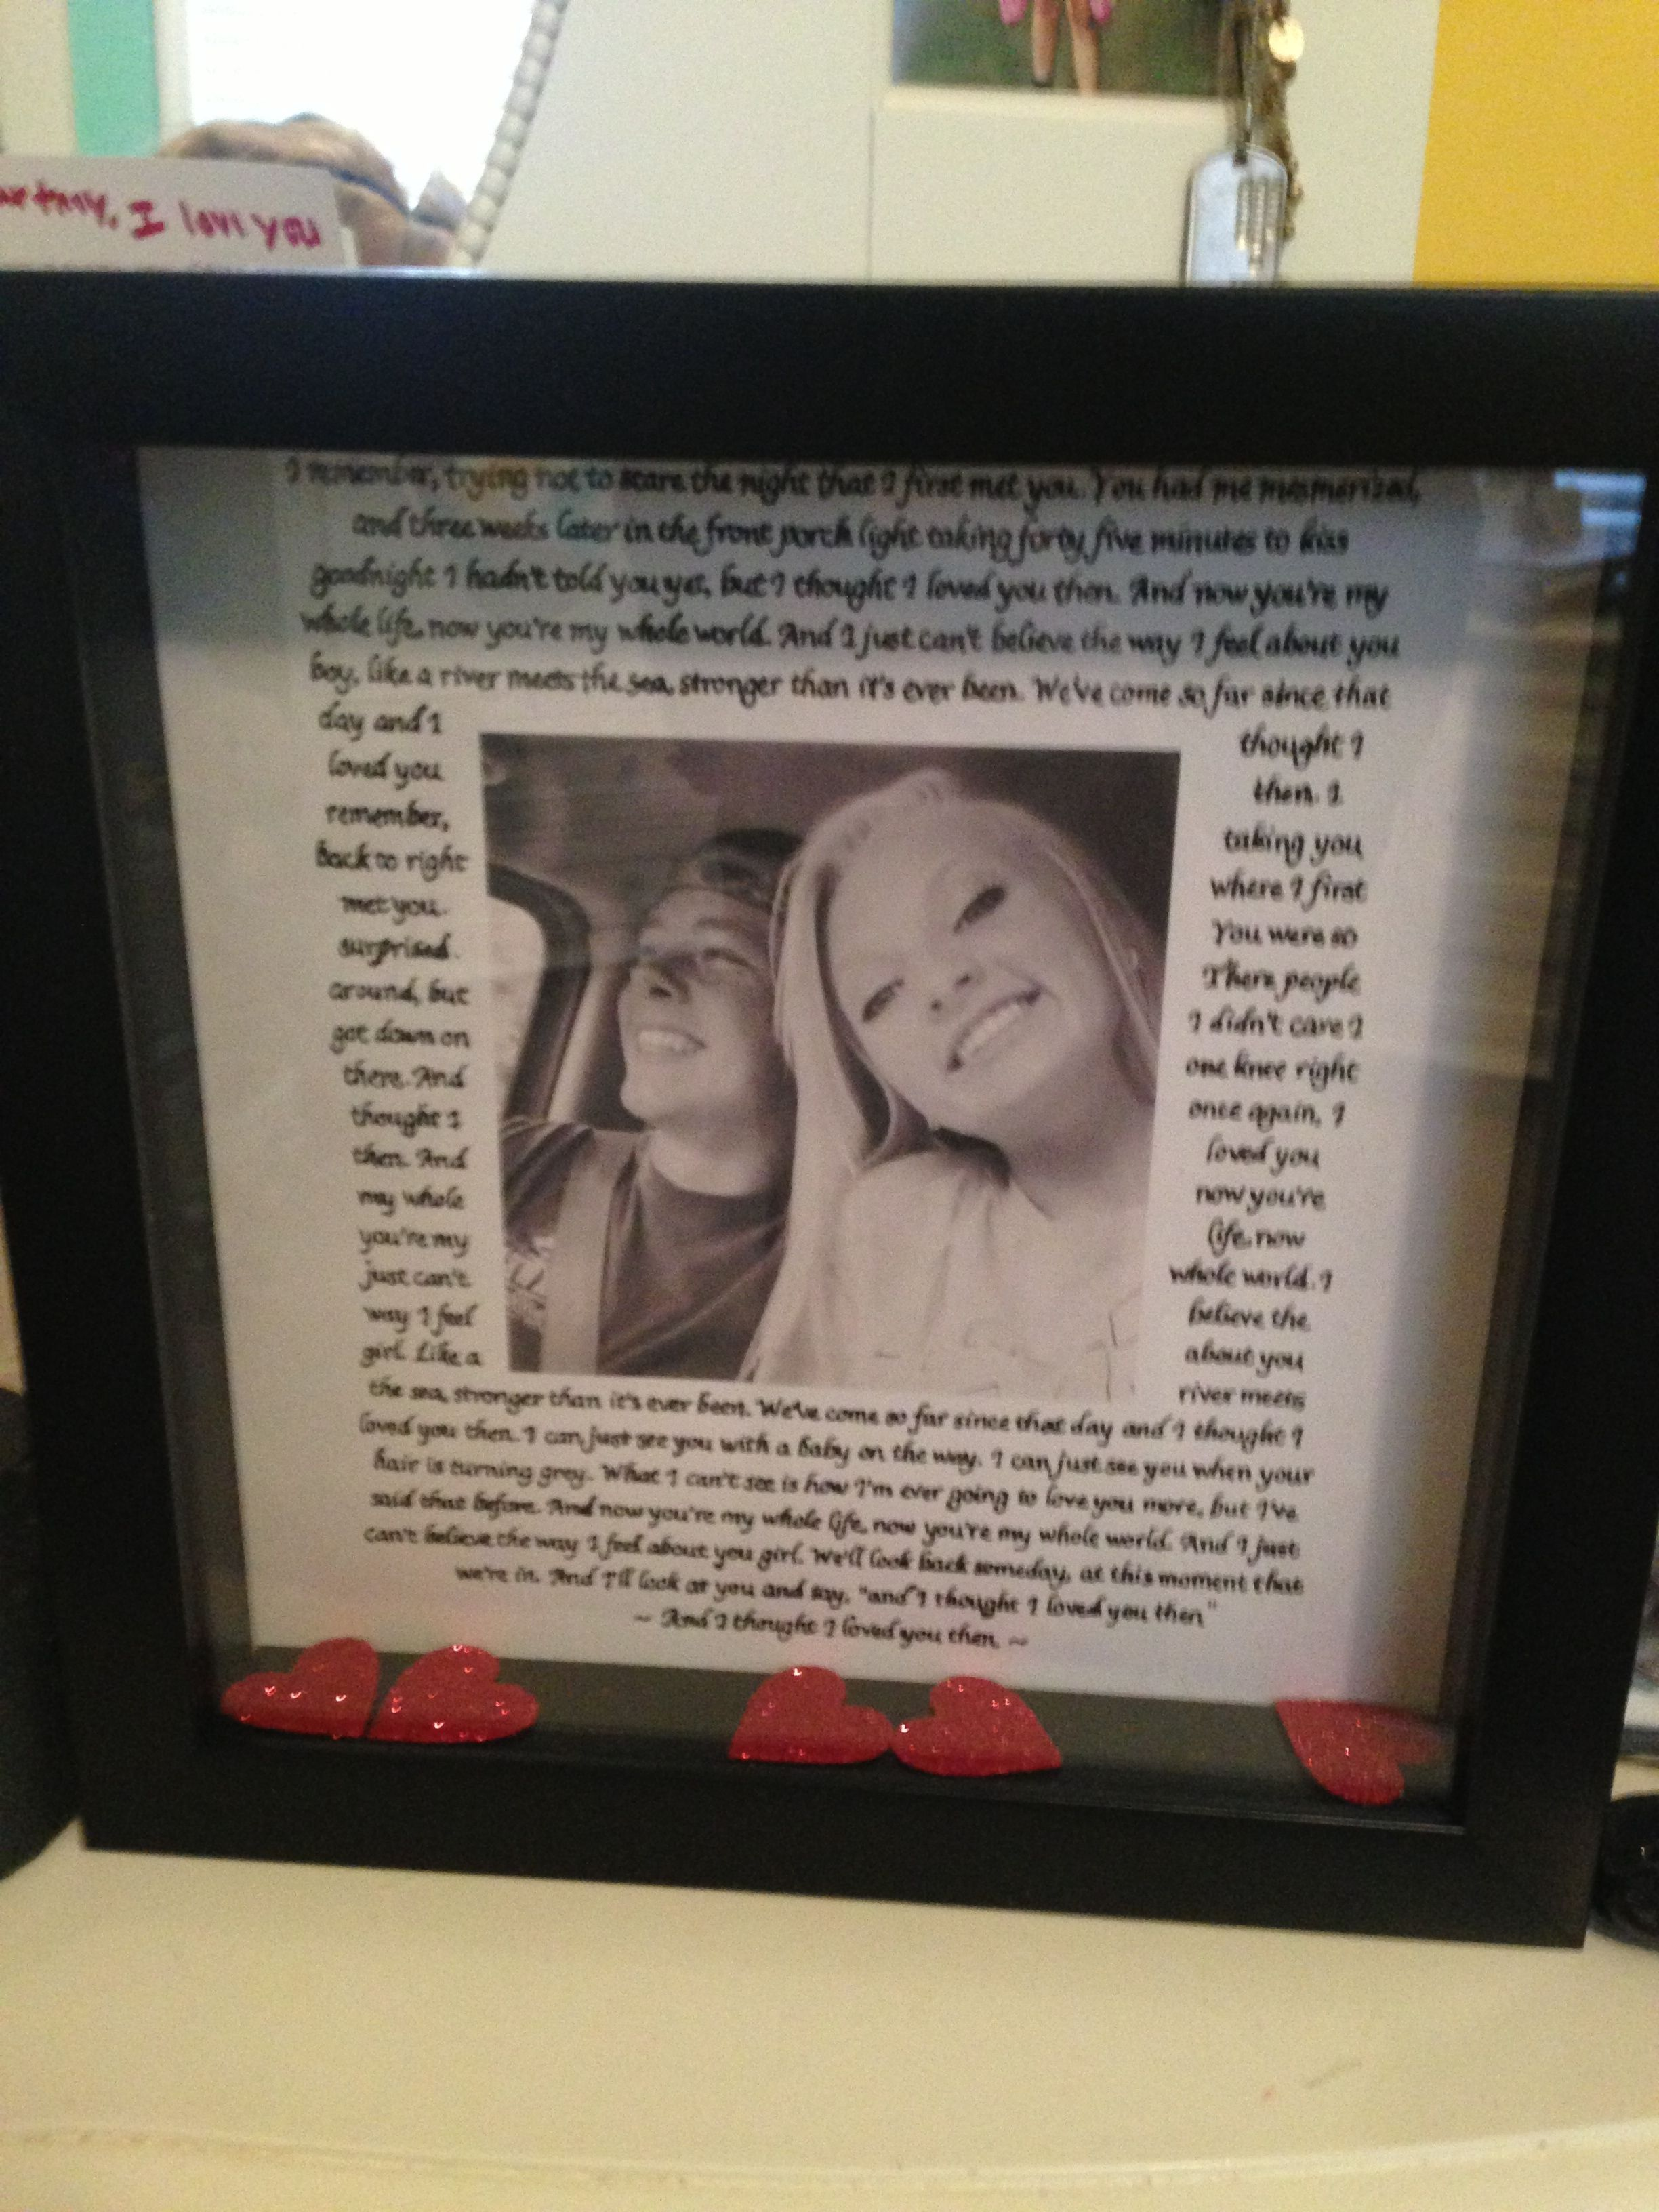 Shadow Box With The Lyrics To Our Song For The Boyfriend